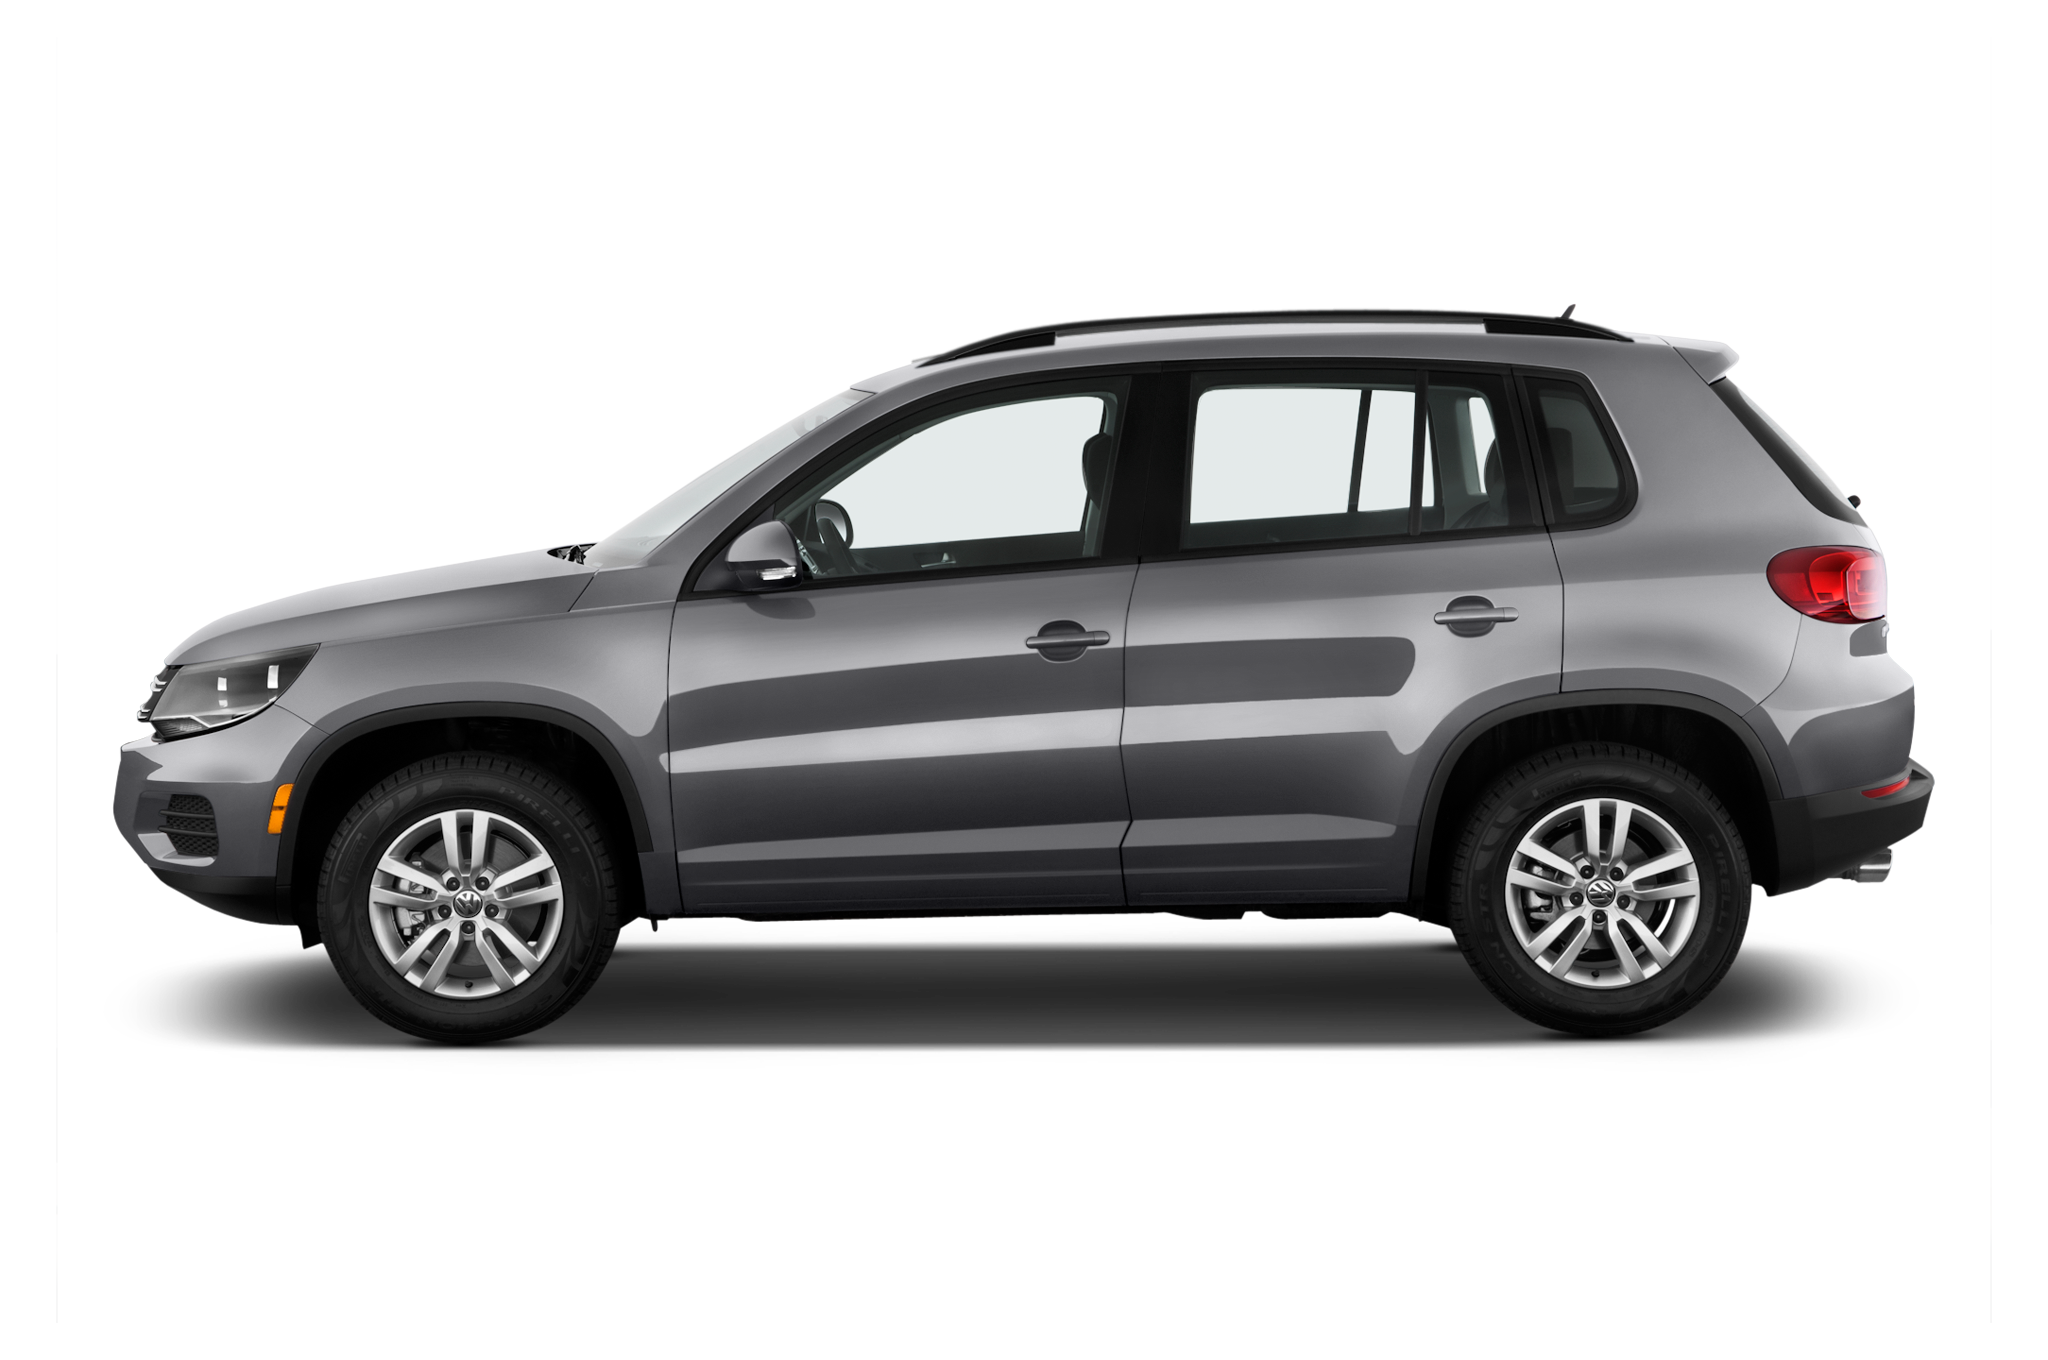 2017 volkswagen tiguan limited is new entry-level model   automobile